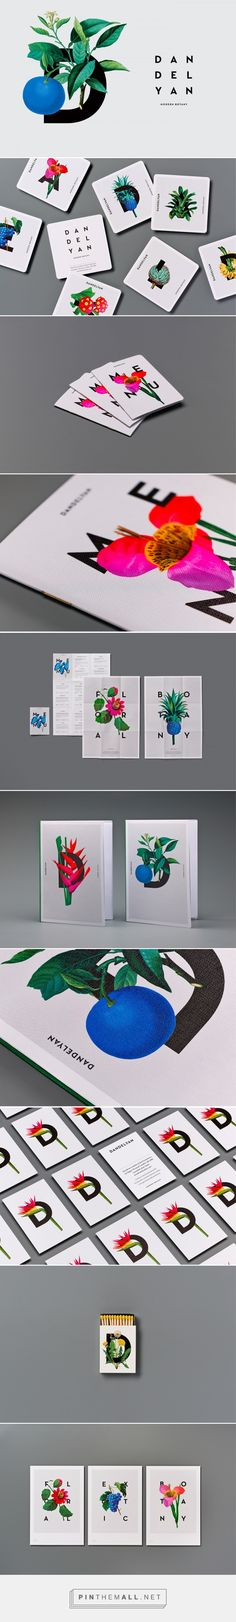 Dandelya Modern Botany Bar Branding by Tim Donaldson | Fivestar Branding Agency – Design and Branding Agency & Curated Inspiration Gallery